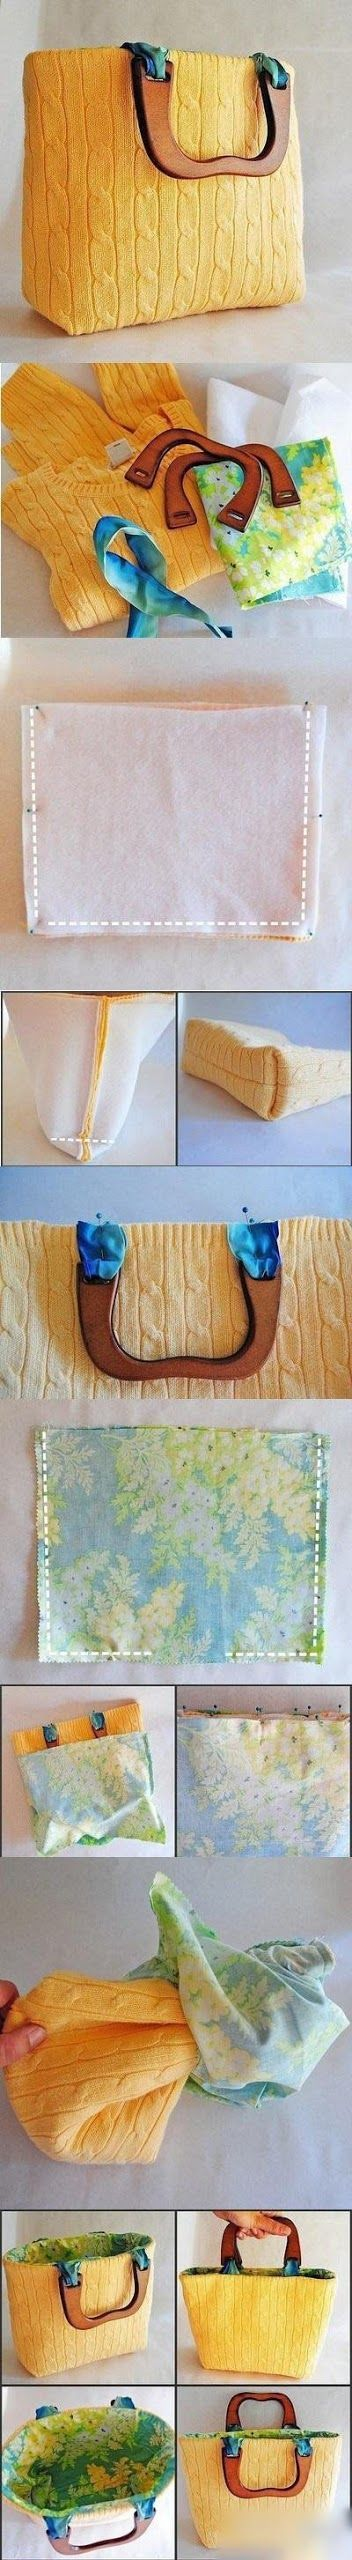 How To Make a bag from old sweater: